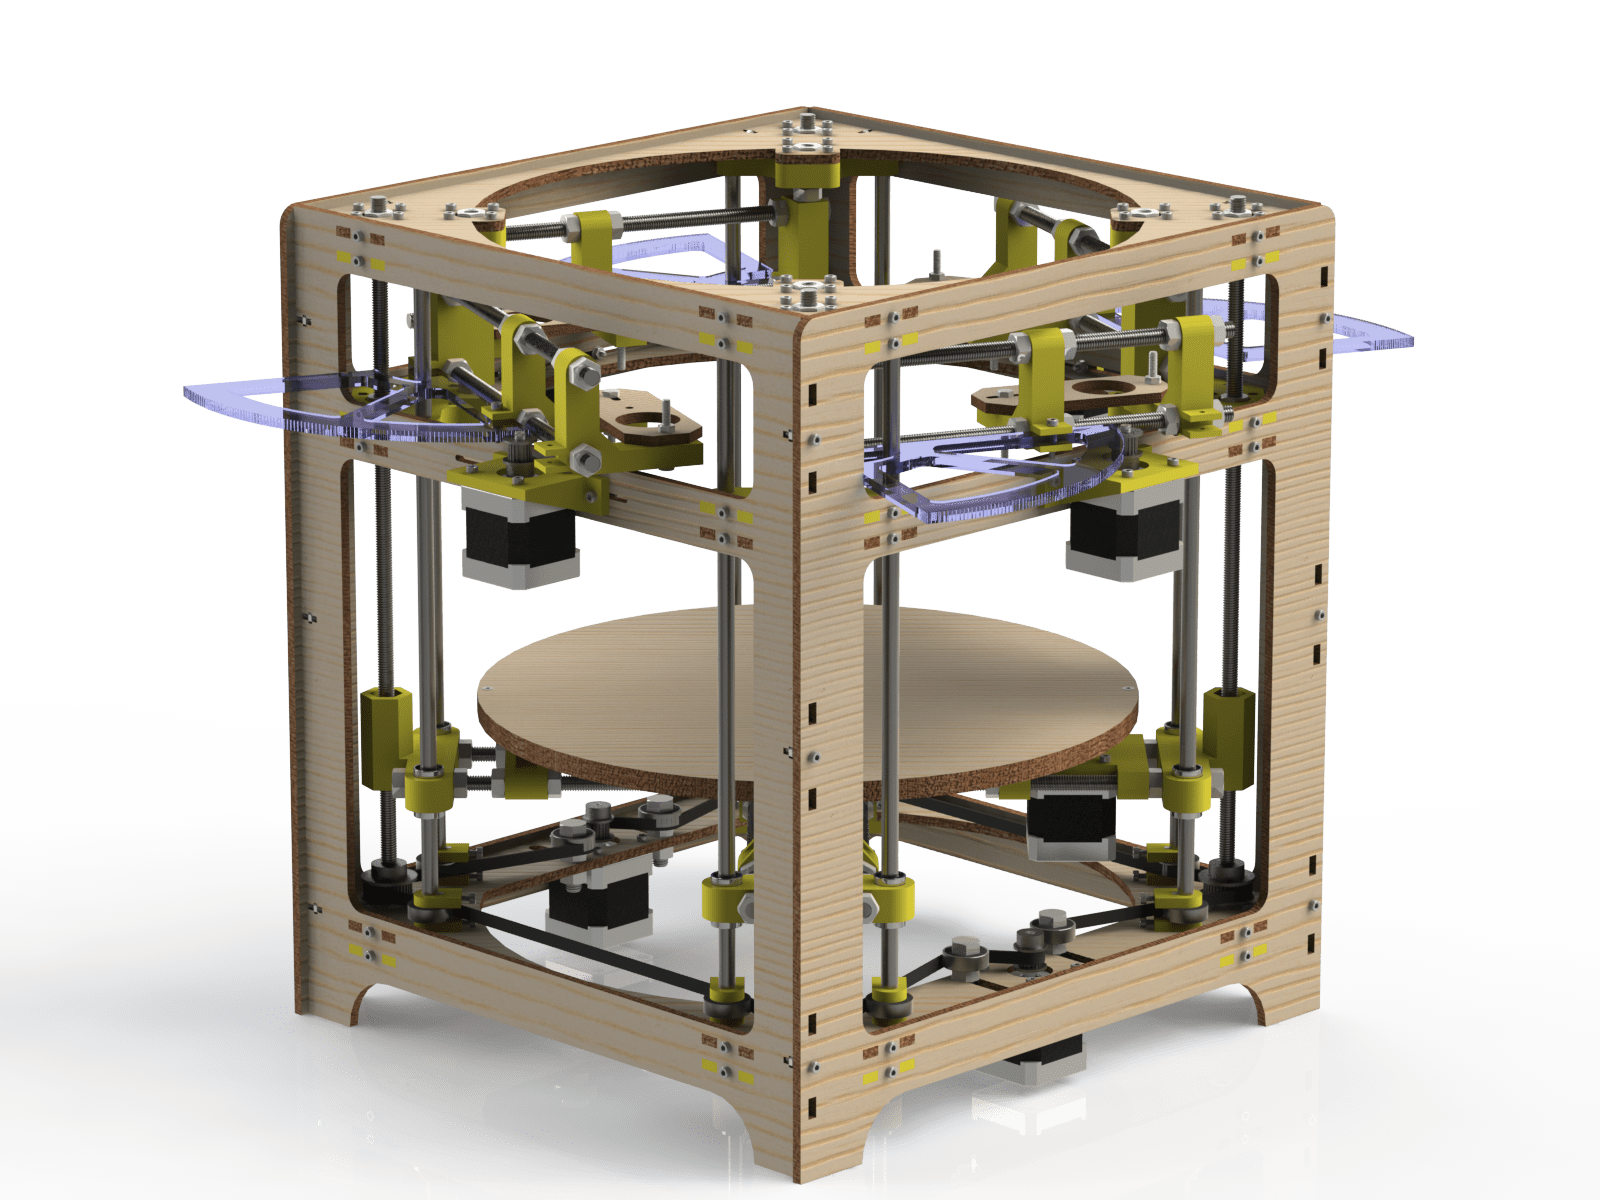 The Theta 3D Printer: 4 Extruders On A Polar Coordinate System